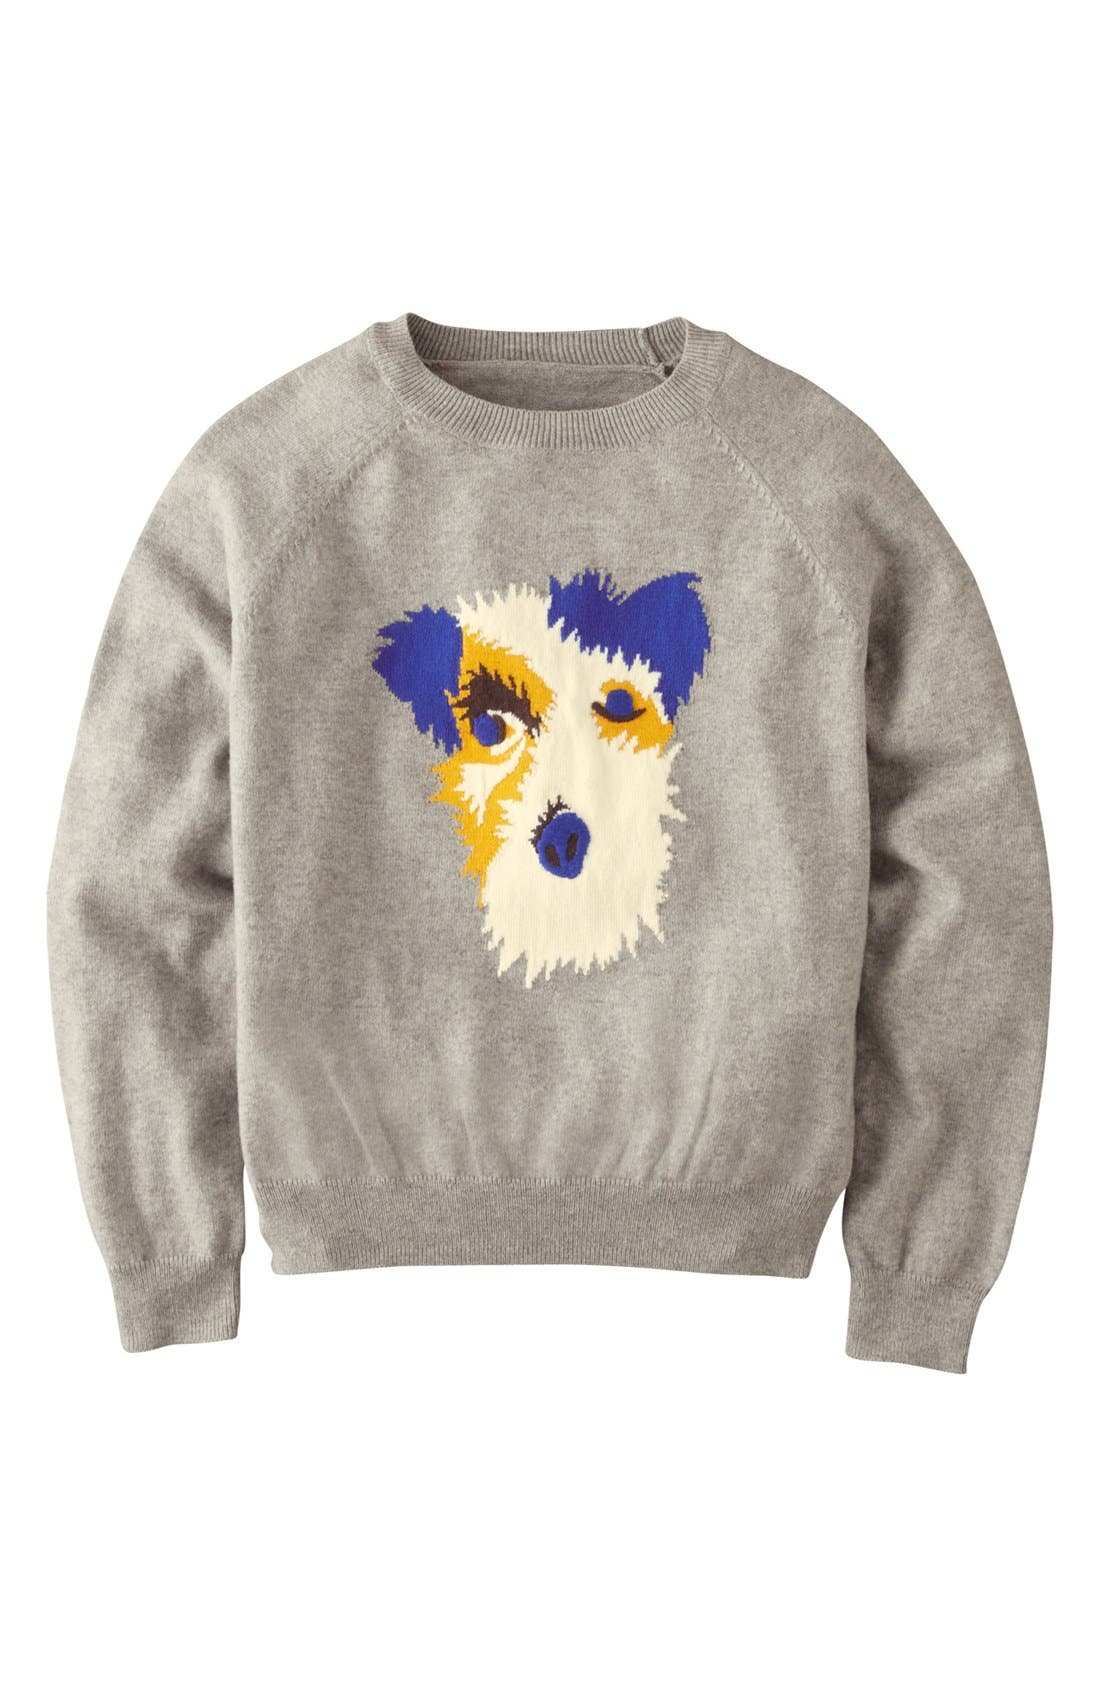 Main Image - Mini Boden Graphic Sweater (Toddler Boys)